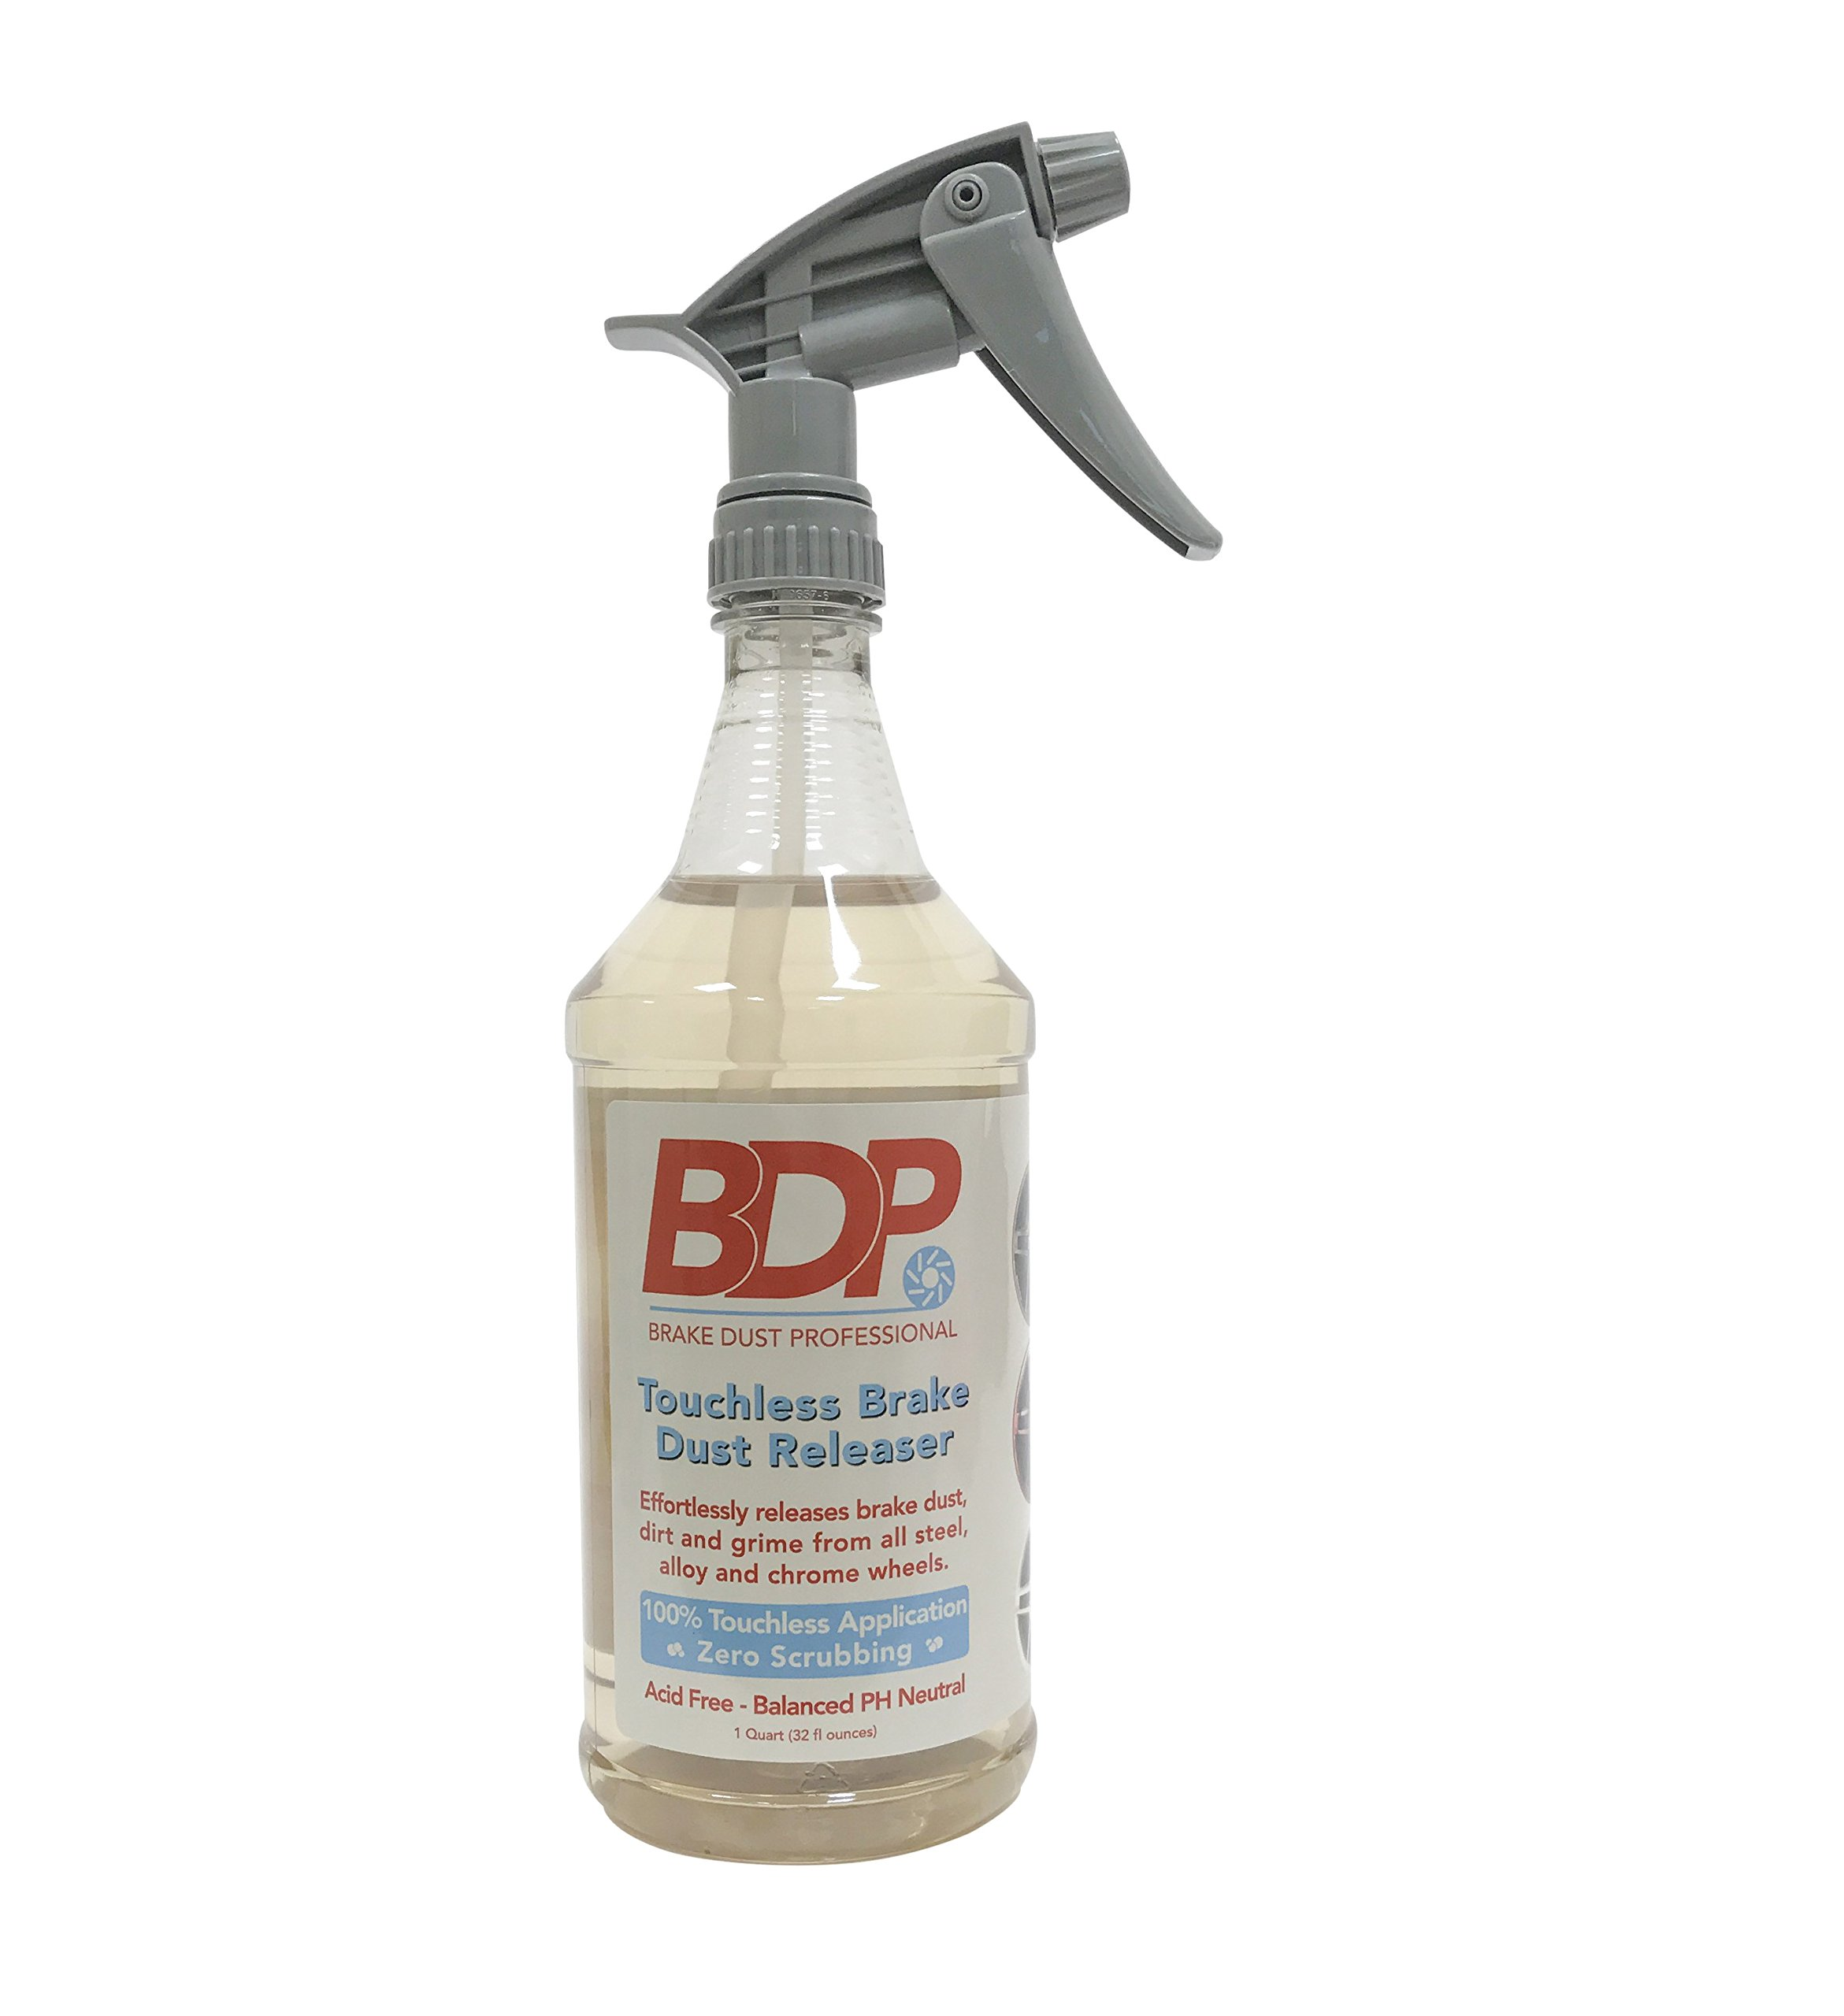 DipYourCar Brake Dust Pro 32oz - Touchless Wheel Cleaner, Safe On All Wheels! Quickly Removes Brake Dust and Grime - Spray On and Rinse Off!